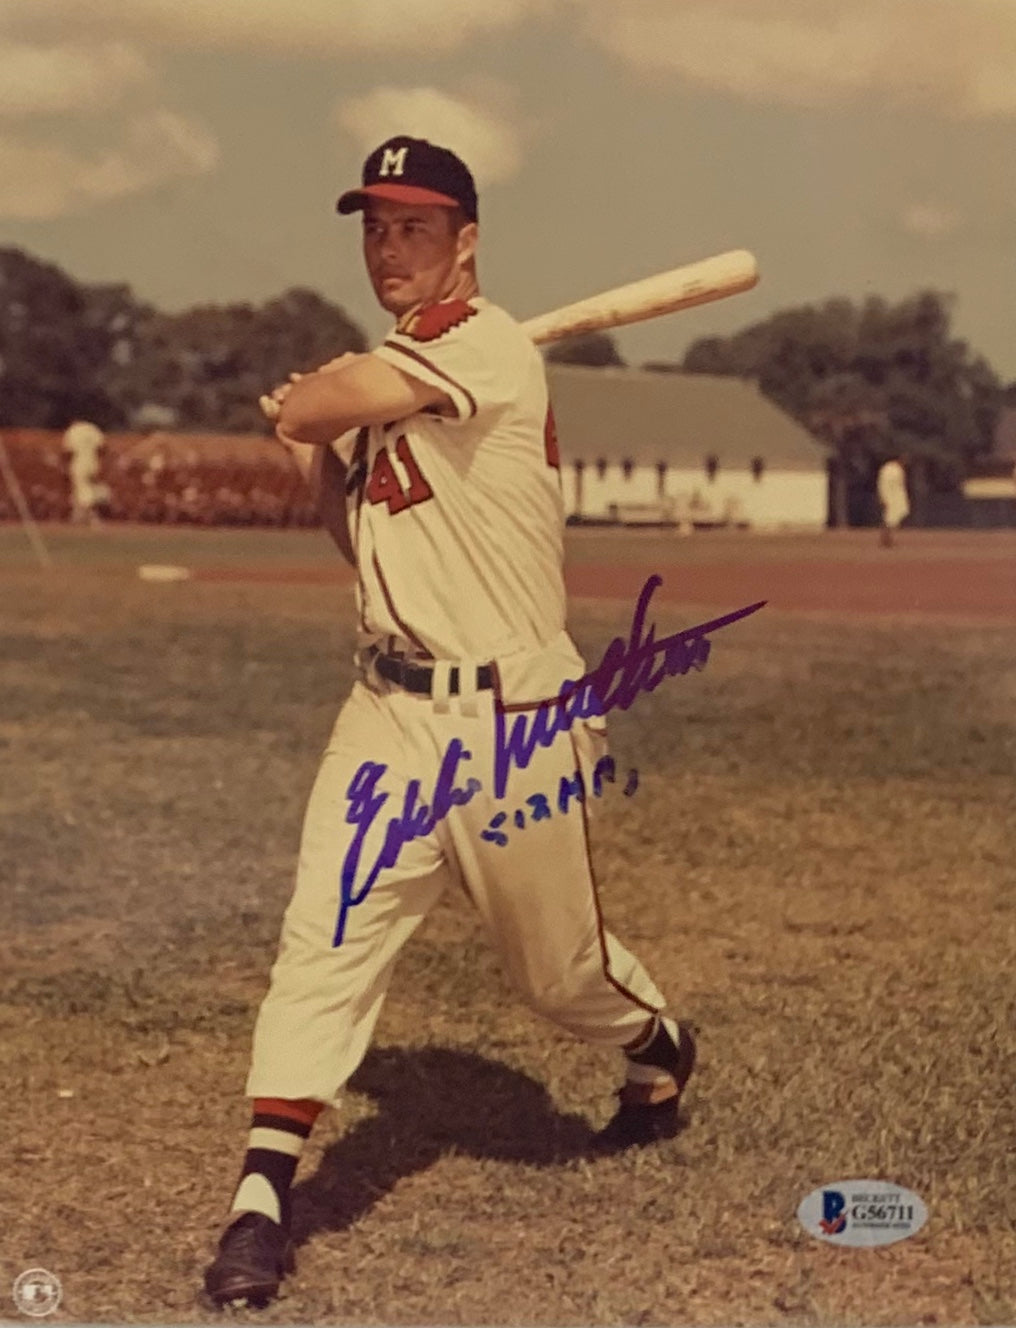 Eddie Mathews Signed 8x10 Photo w/ Inscription - Latitude Sports Marketing